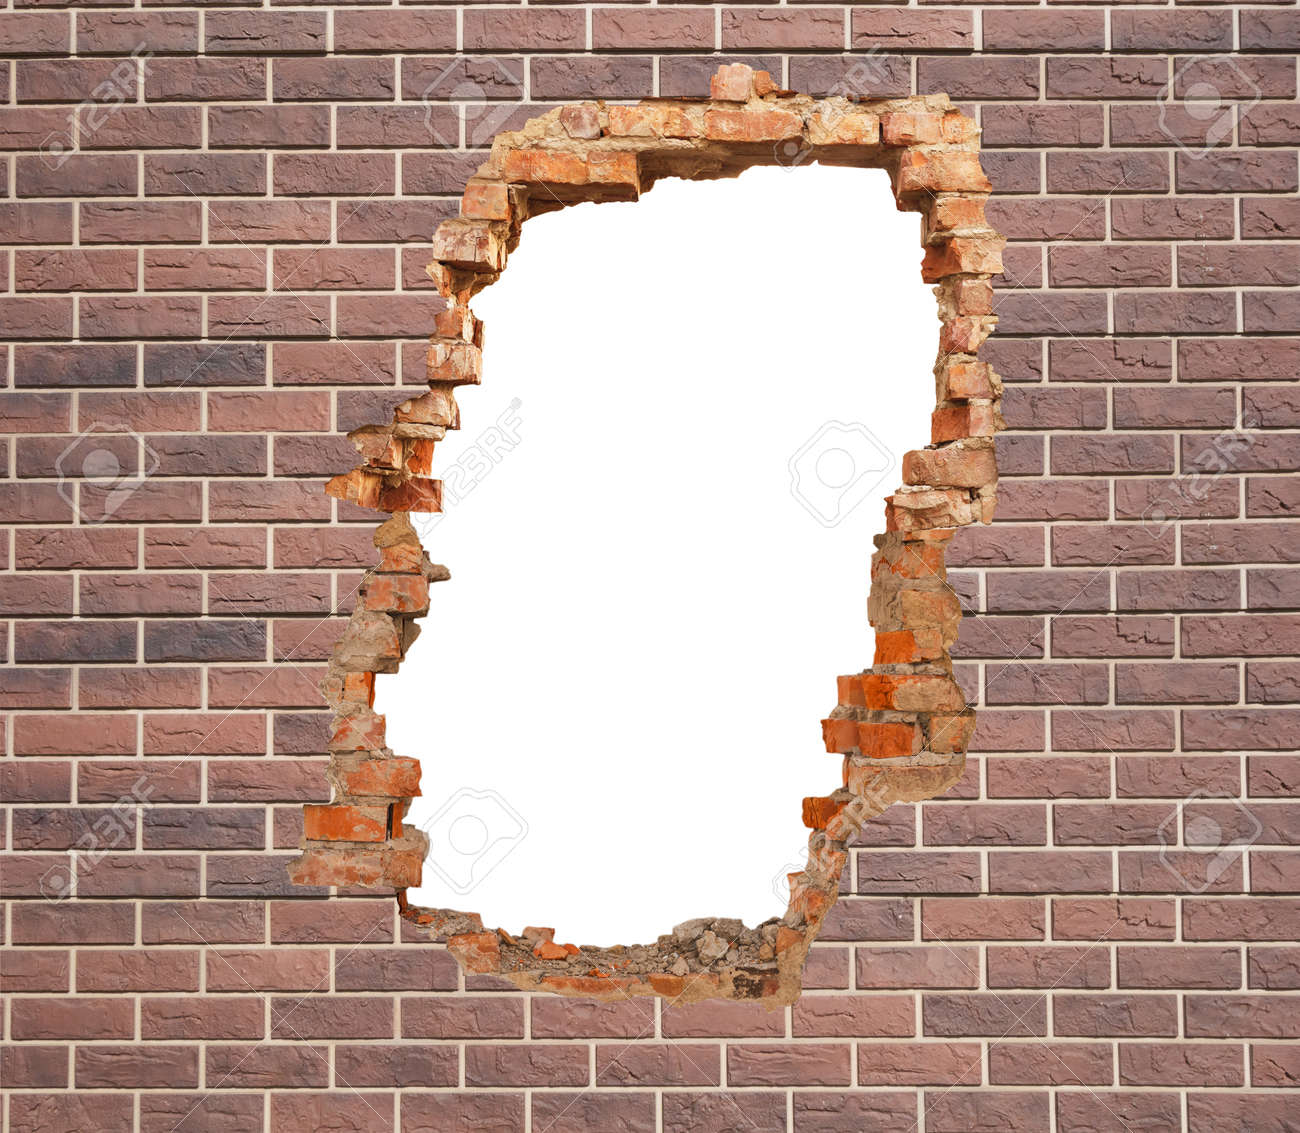 White hole in brick wall. - 154860467